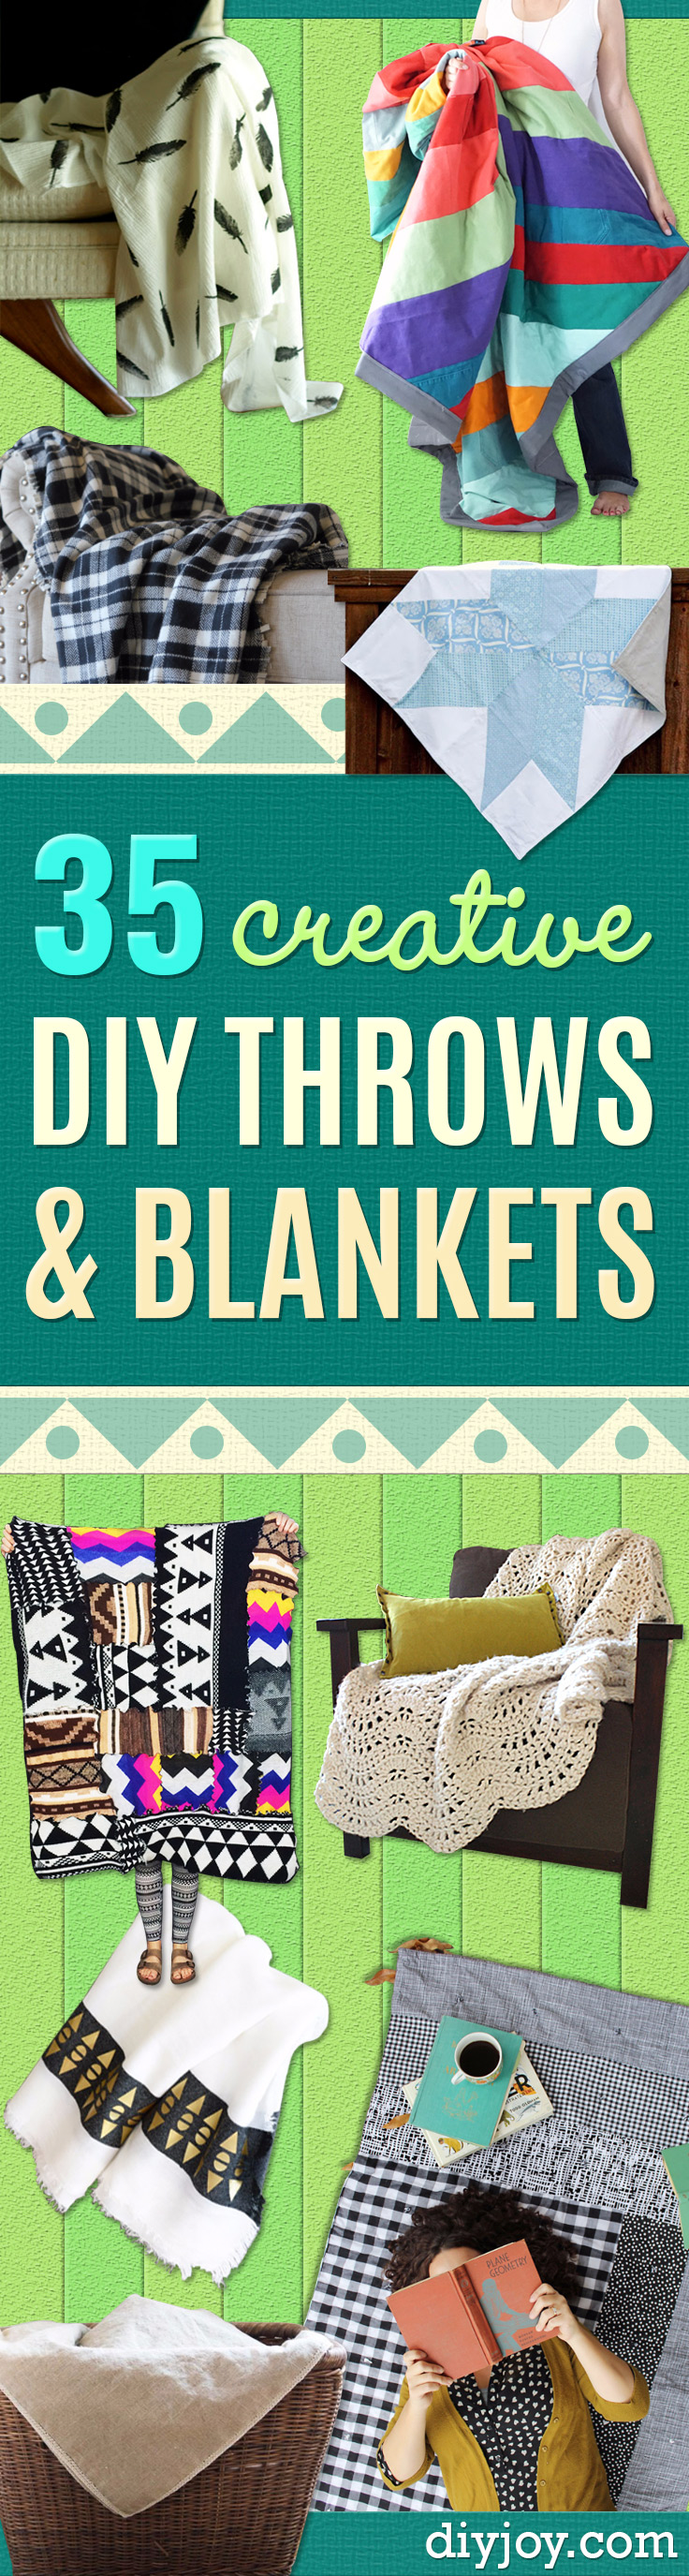 DIY Blankets and Throws - How To Make Easy Home Decor and Warm Covers for Women, Kids, Teens and Adults - Fleece, Knit, No Sew and Easy Projects to Make for Bed and Sofa